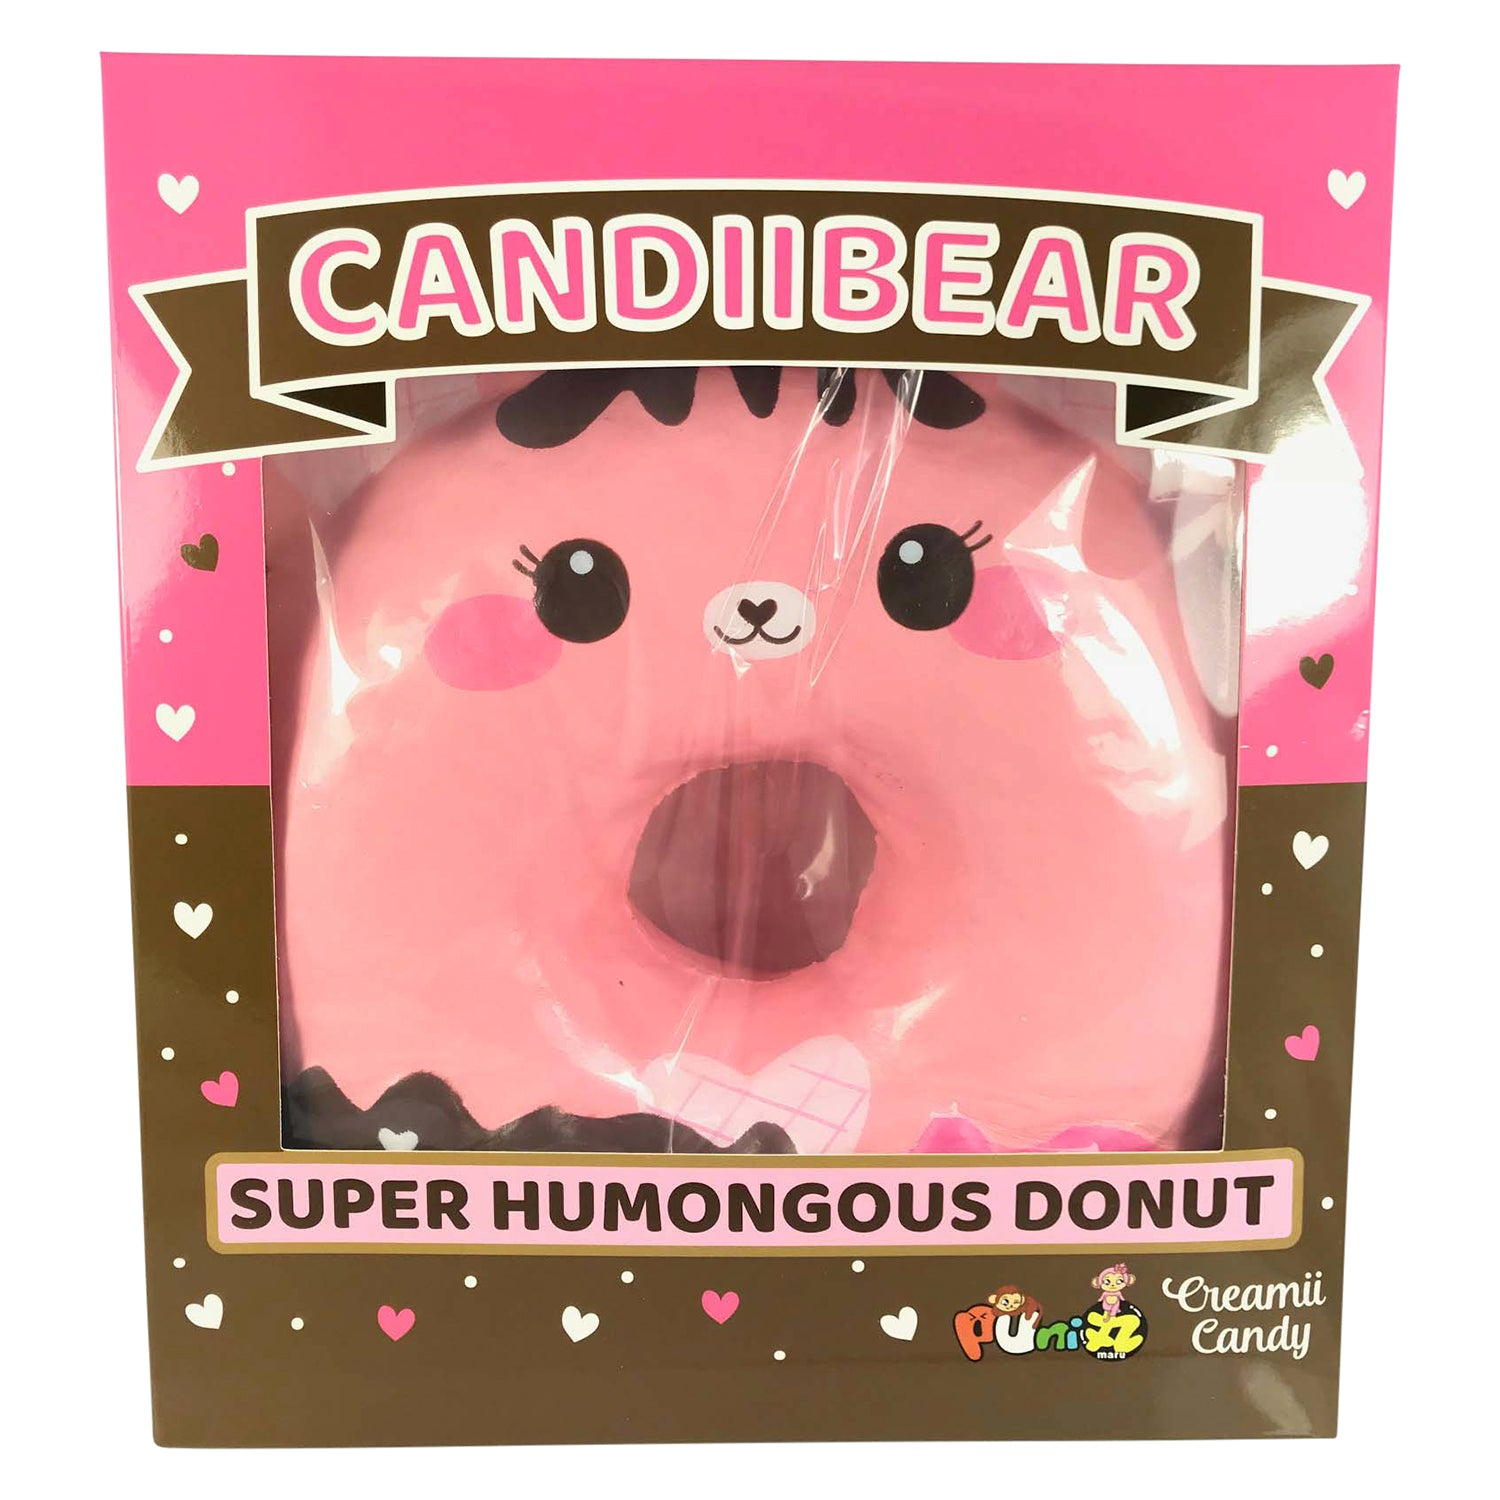 ***LIMITED - AS IS, DEFECTED - FINAL SALE!*** SUPER HUMONGOUS CANDIIBEAR DONUT...HUGE, Jumbo Squishy! ENORMOUS